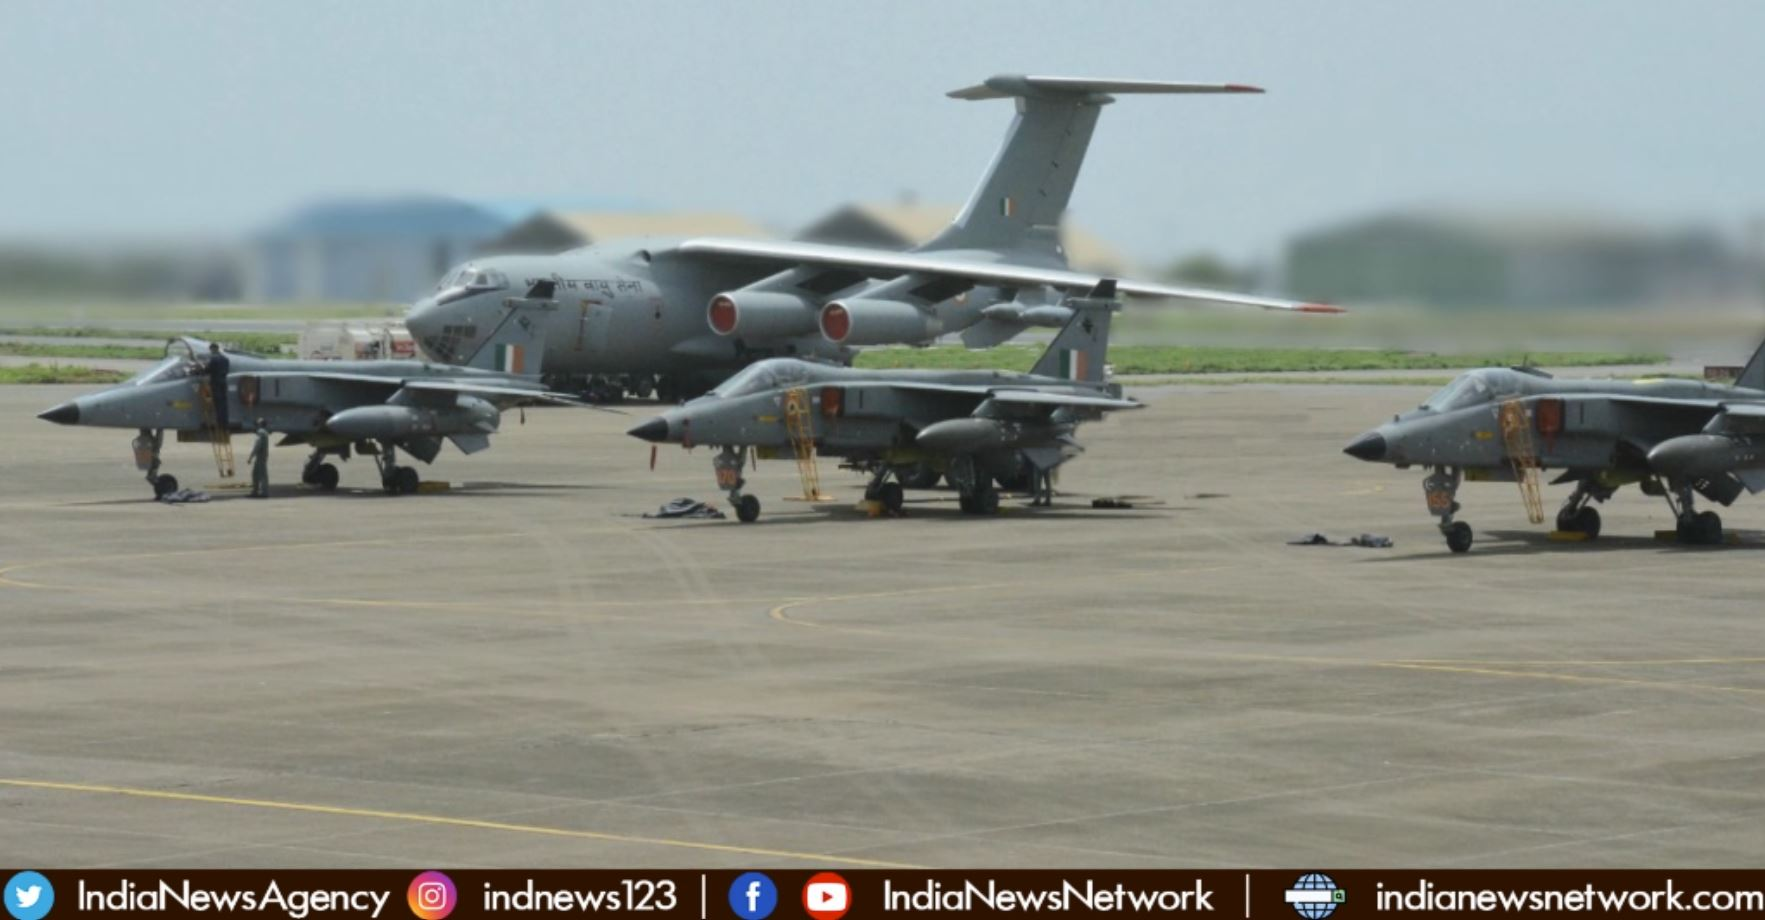 Indian Air Force, Indian Navy exercise with US Navy's Carrier Strike Group